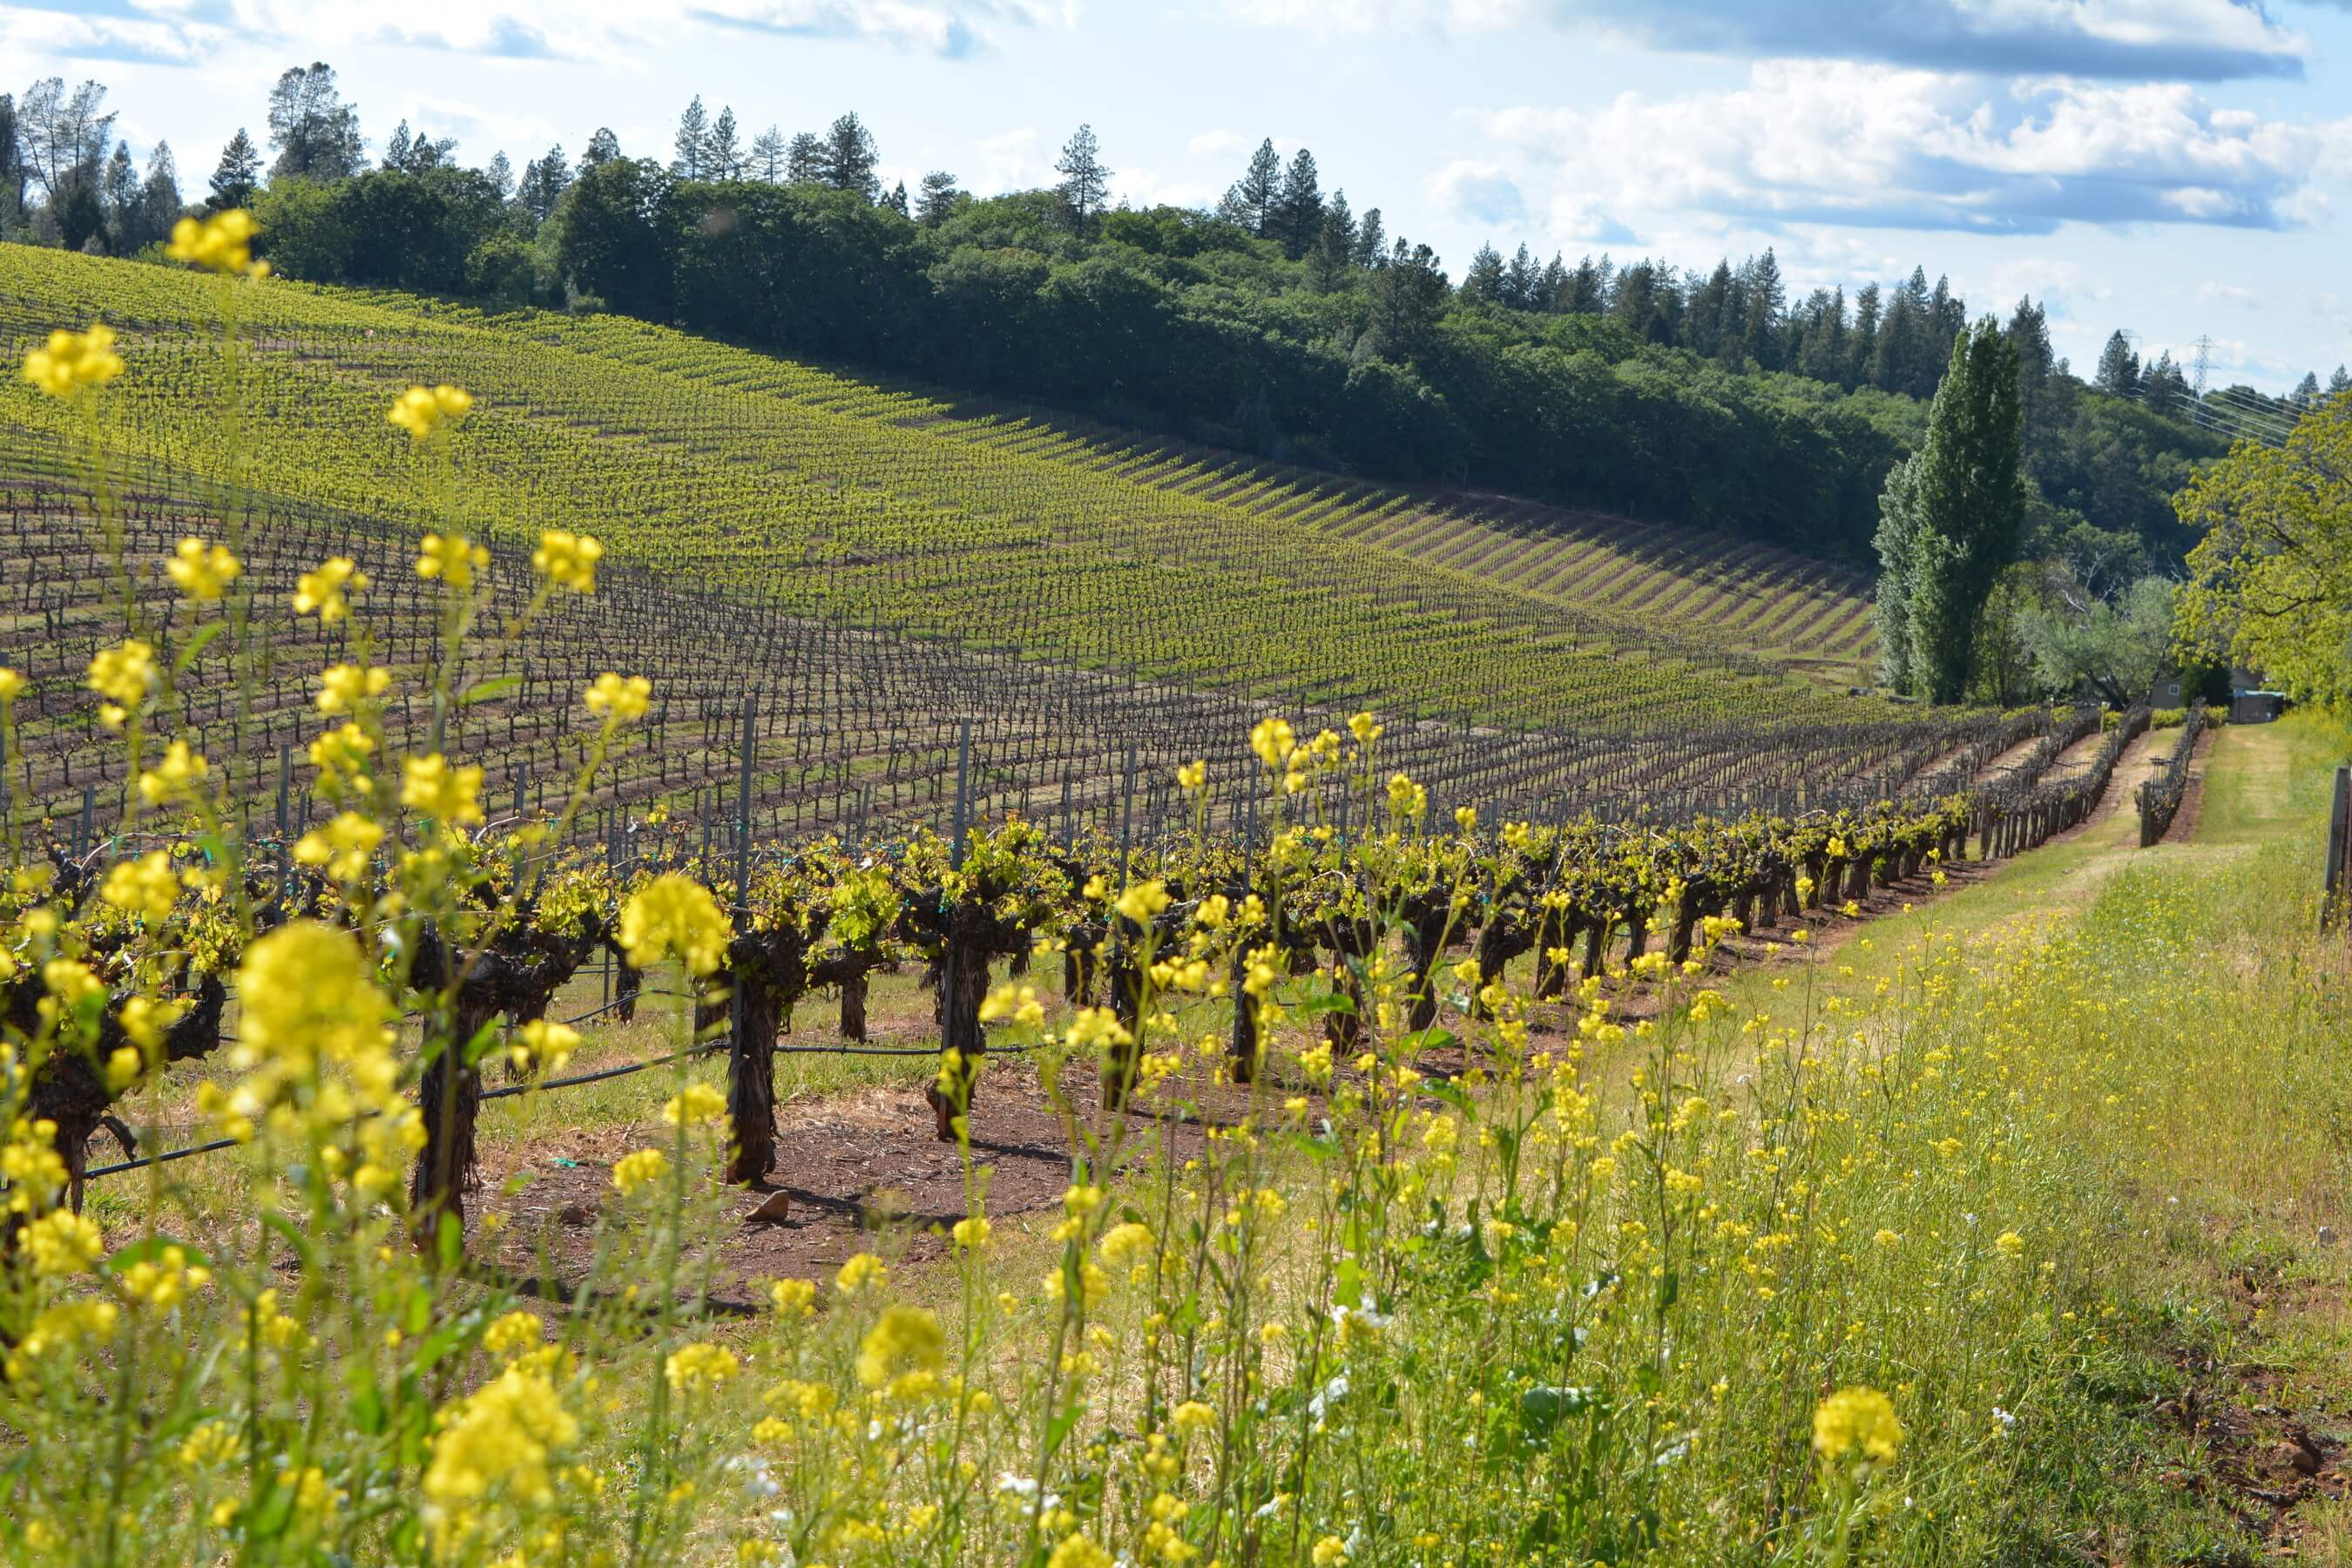 Sierra Foothills: Wine roads of California